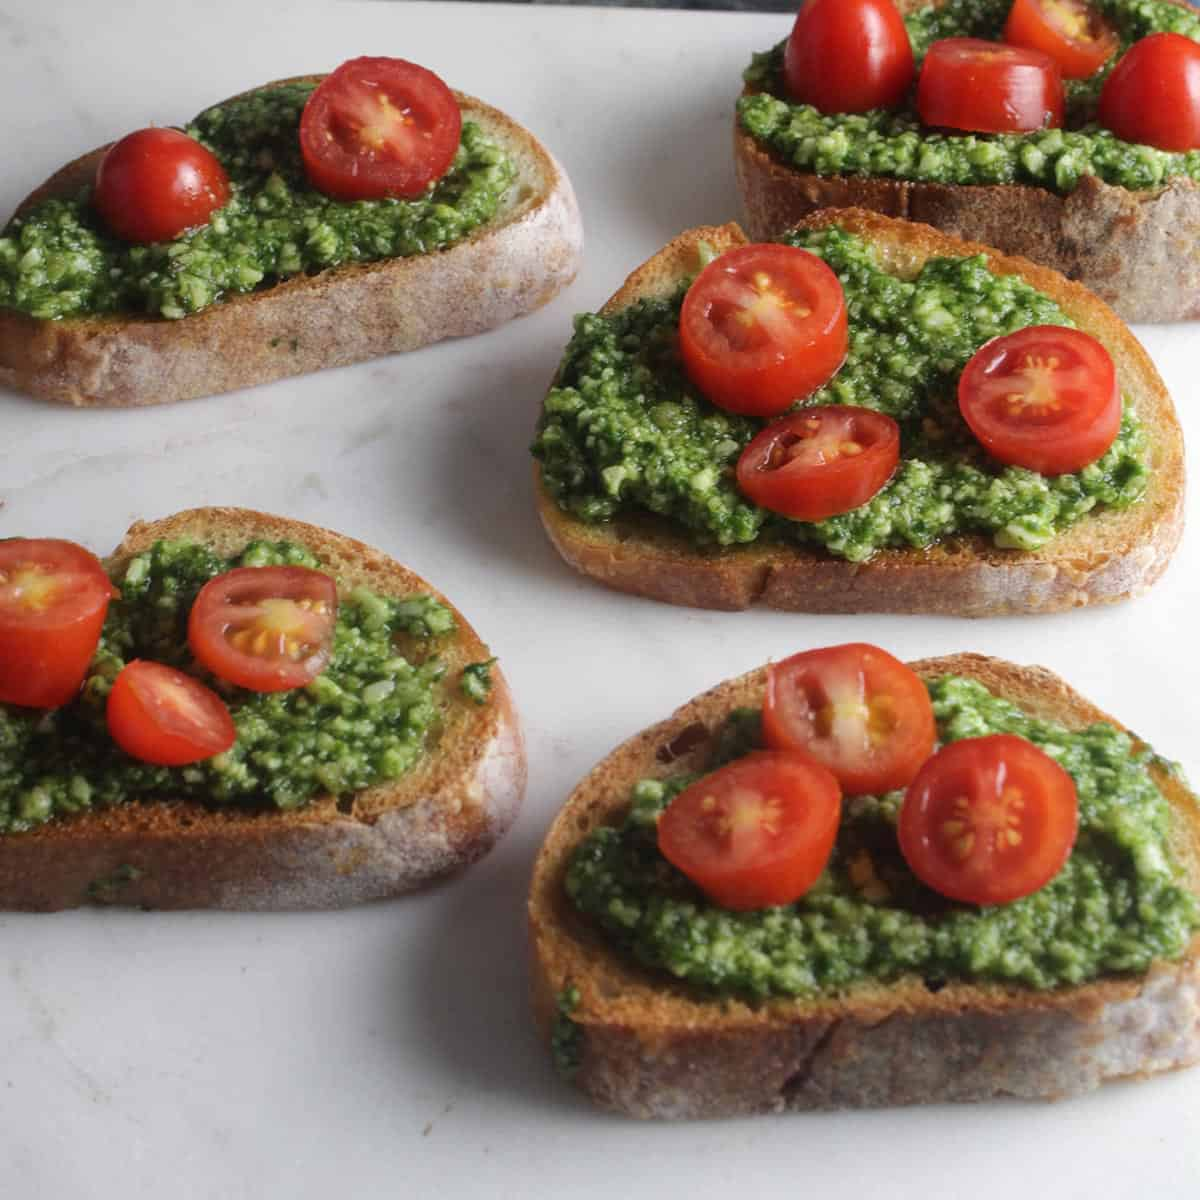 crostini topped with pesto and red tomatoes